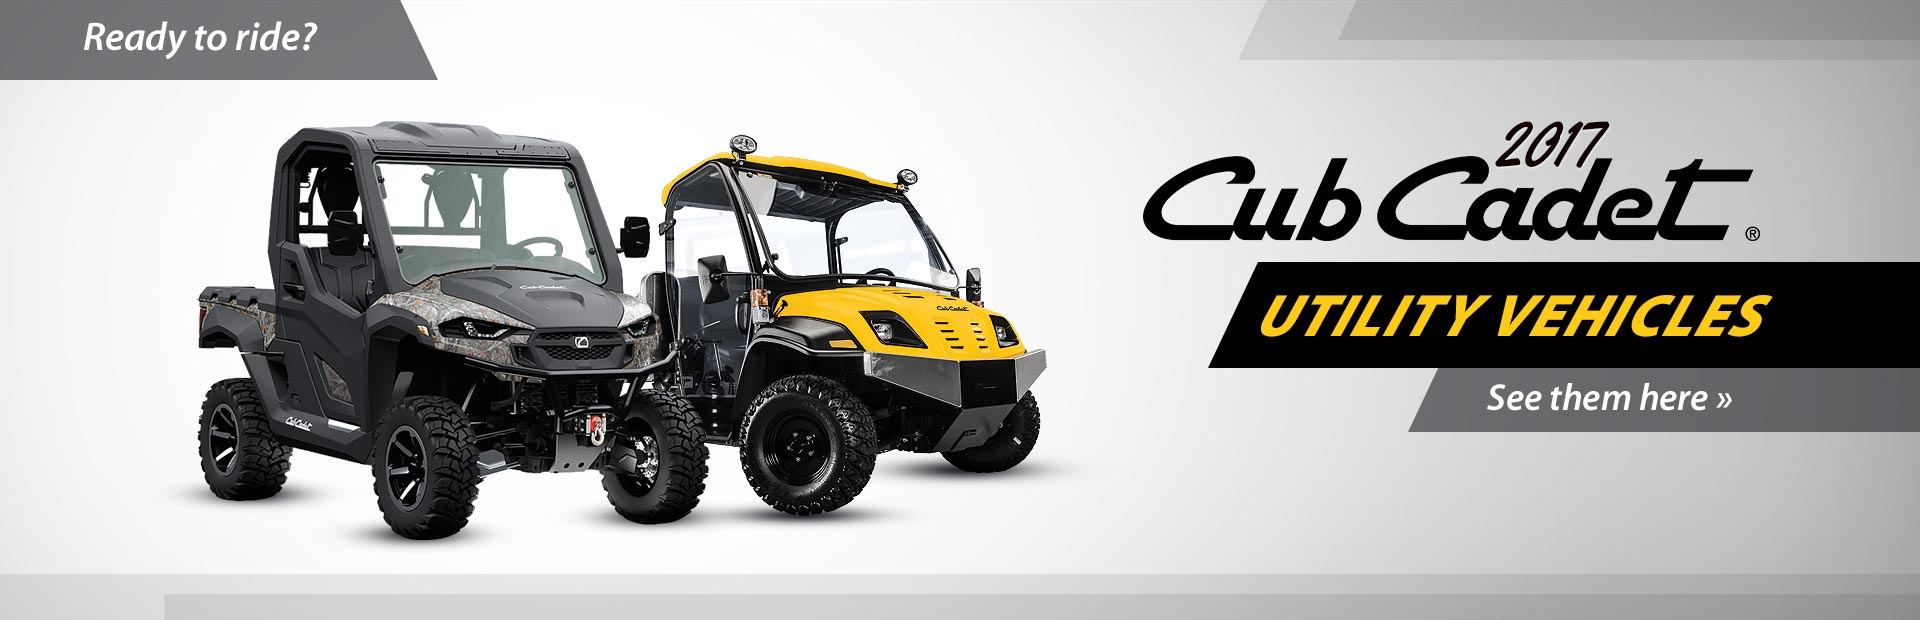 2017 Cub Cadet Utility Vehicles: Click here to view the models.